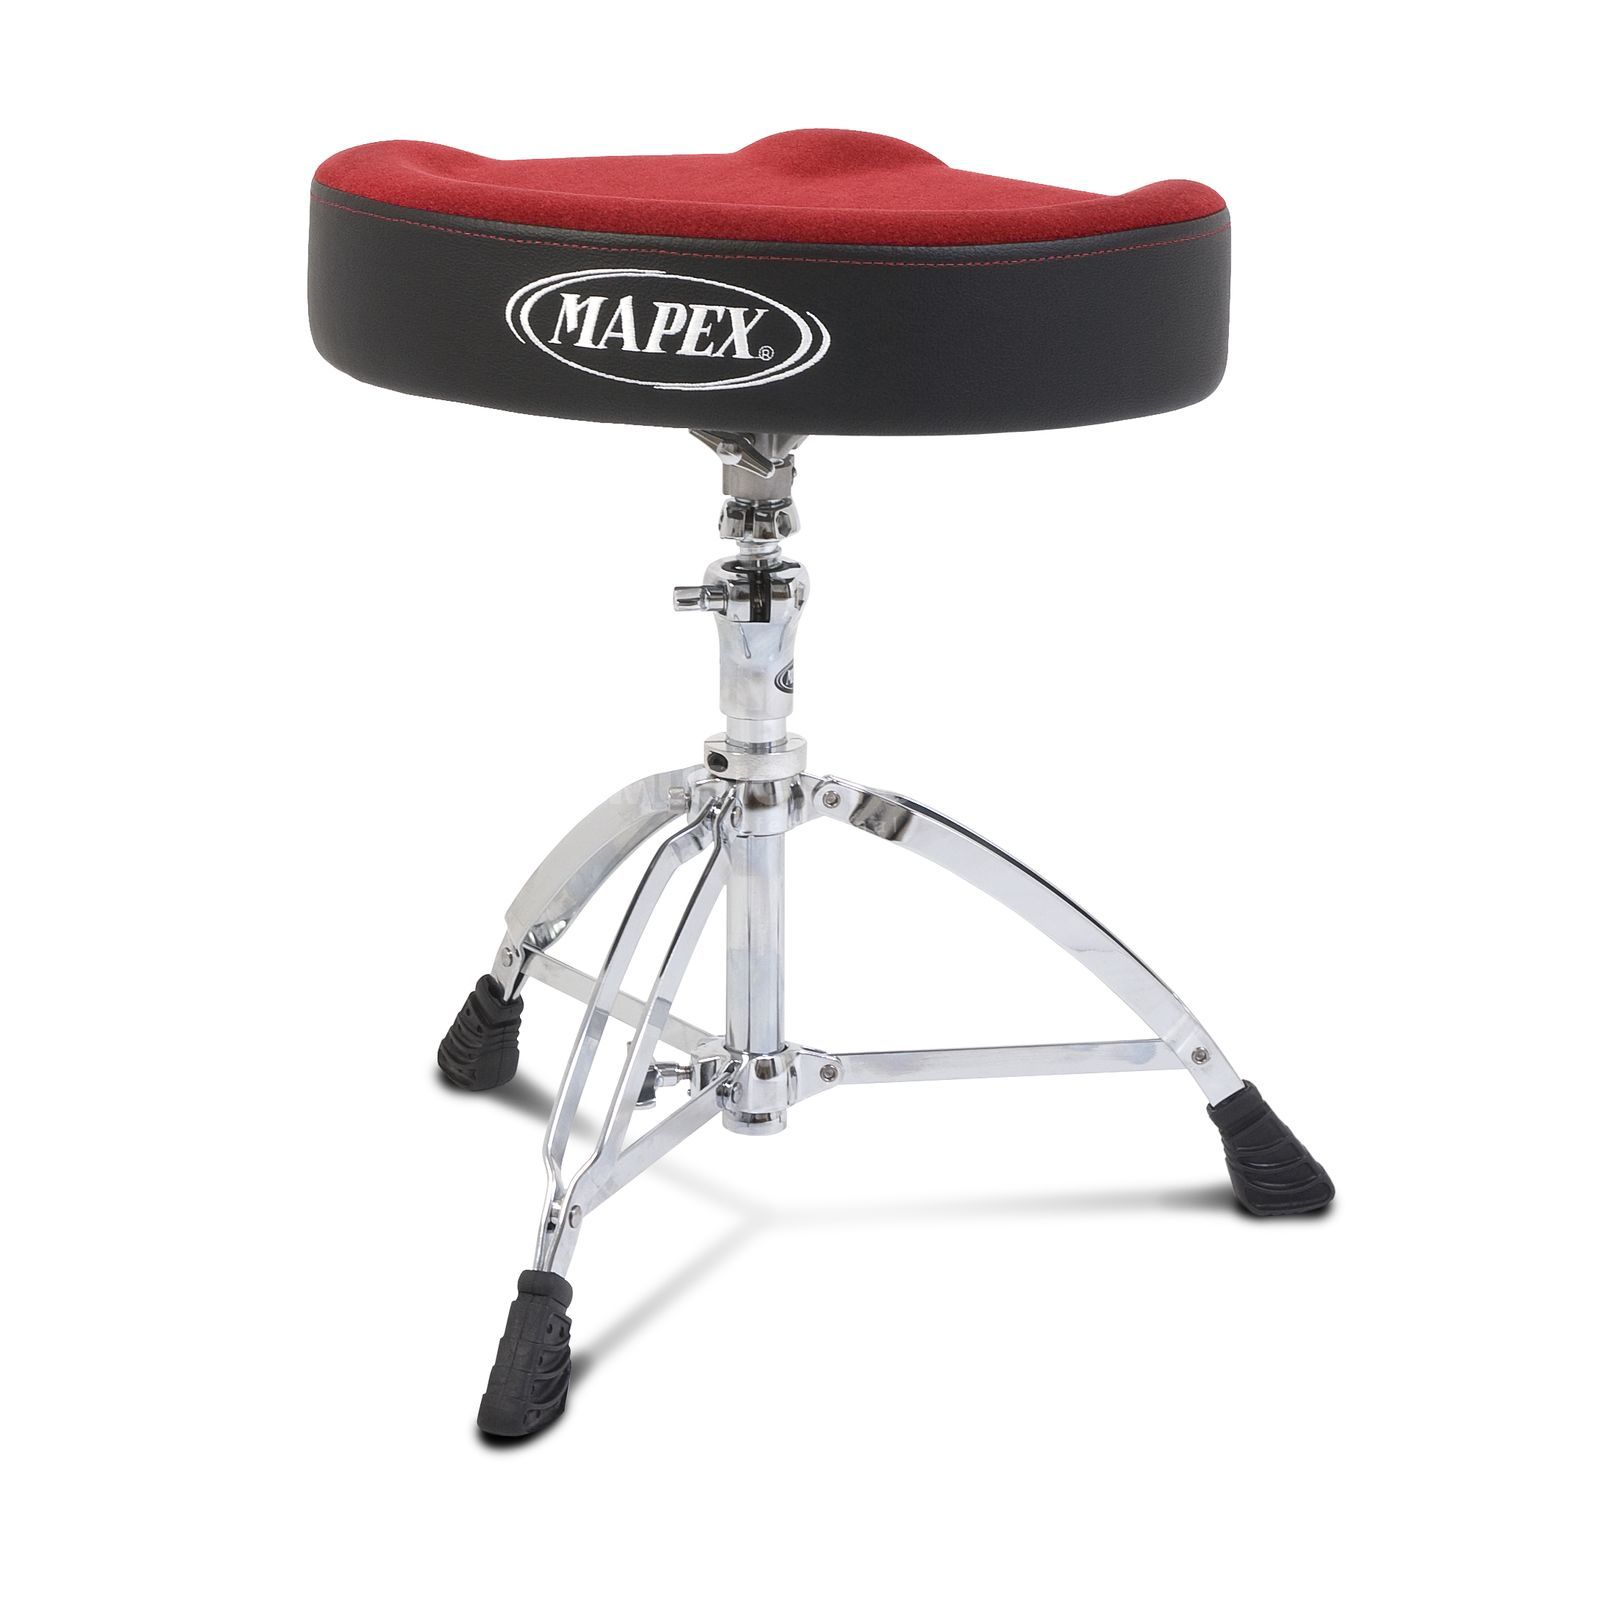 Mapex Drum Throne MXT765ASER, Saddle, Red Seat Produktbillede